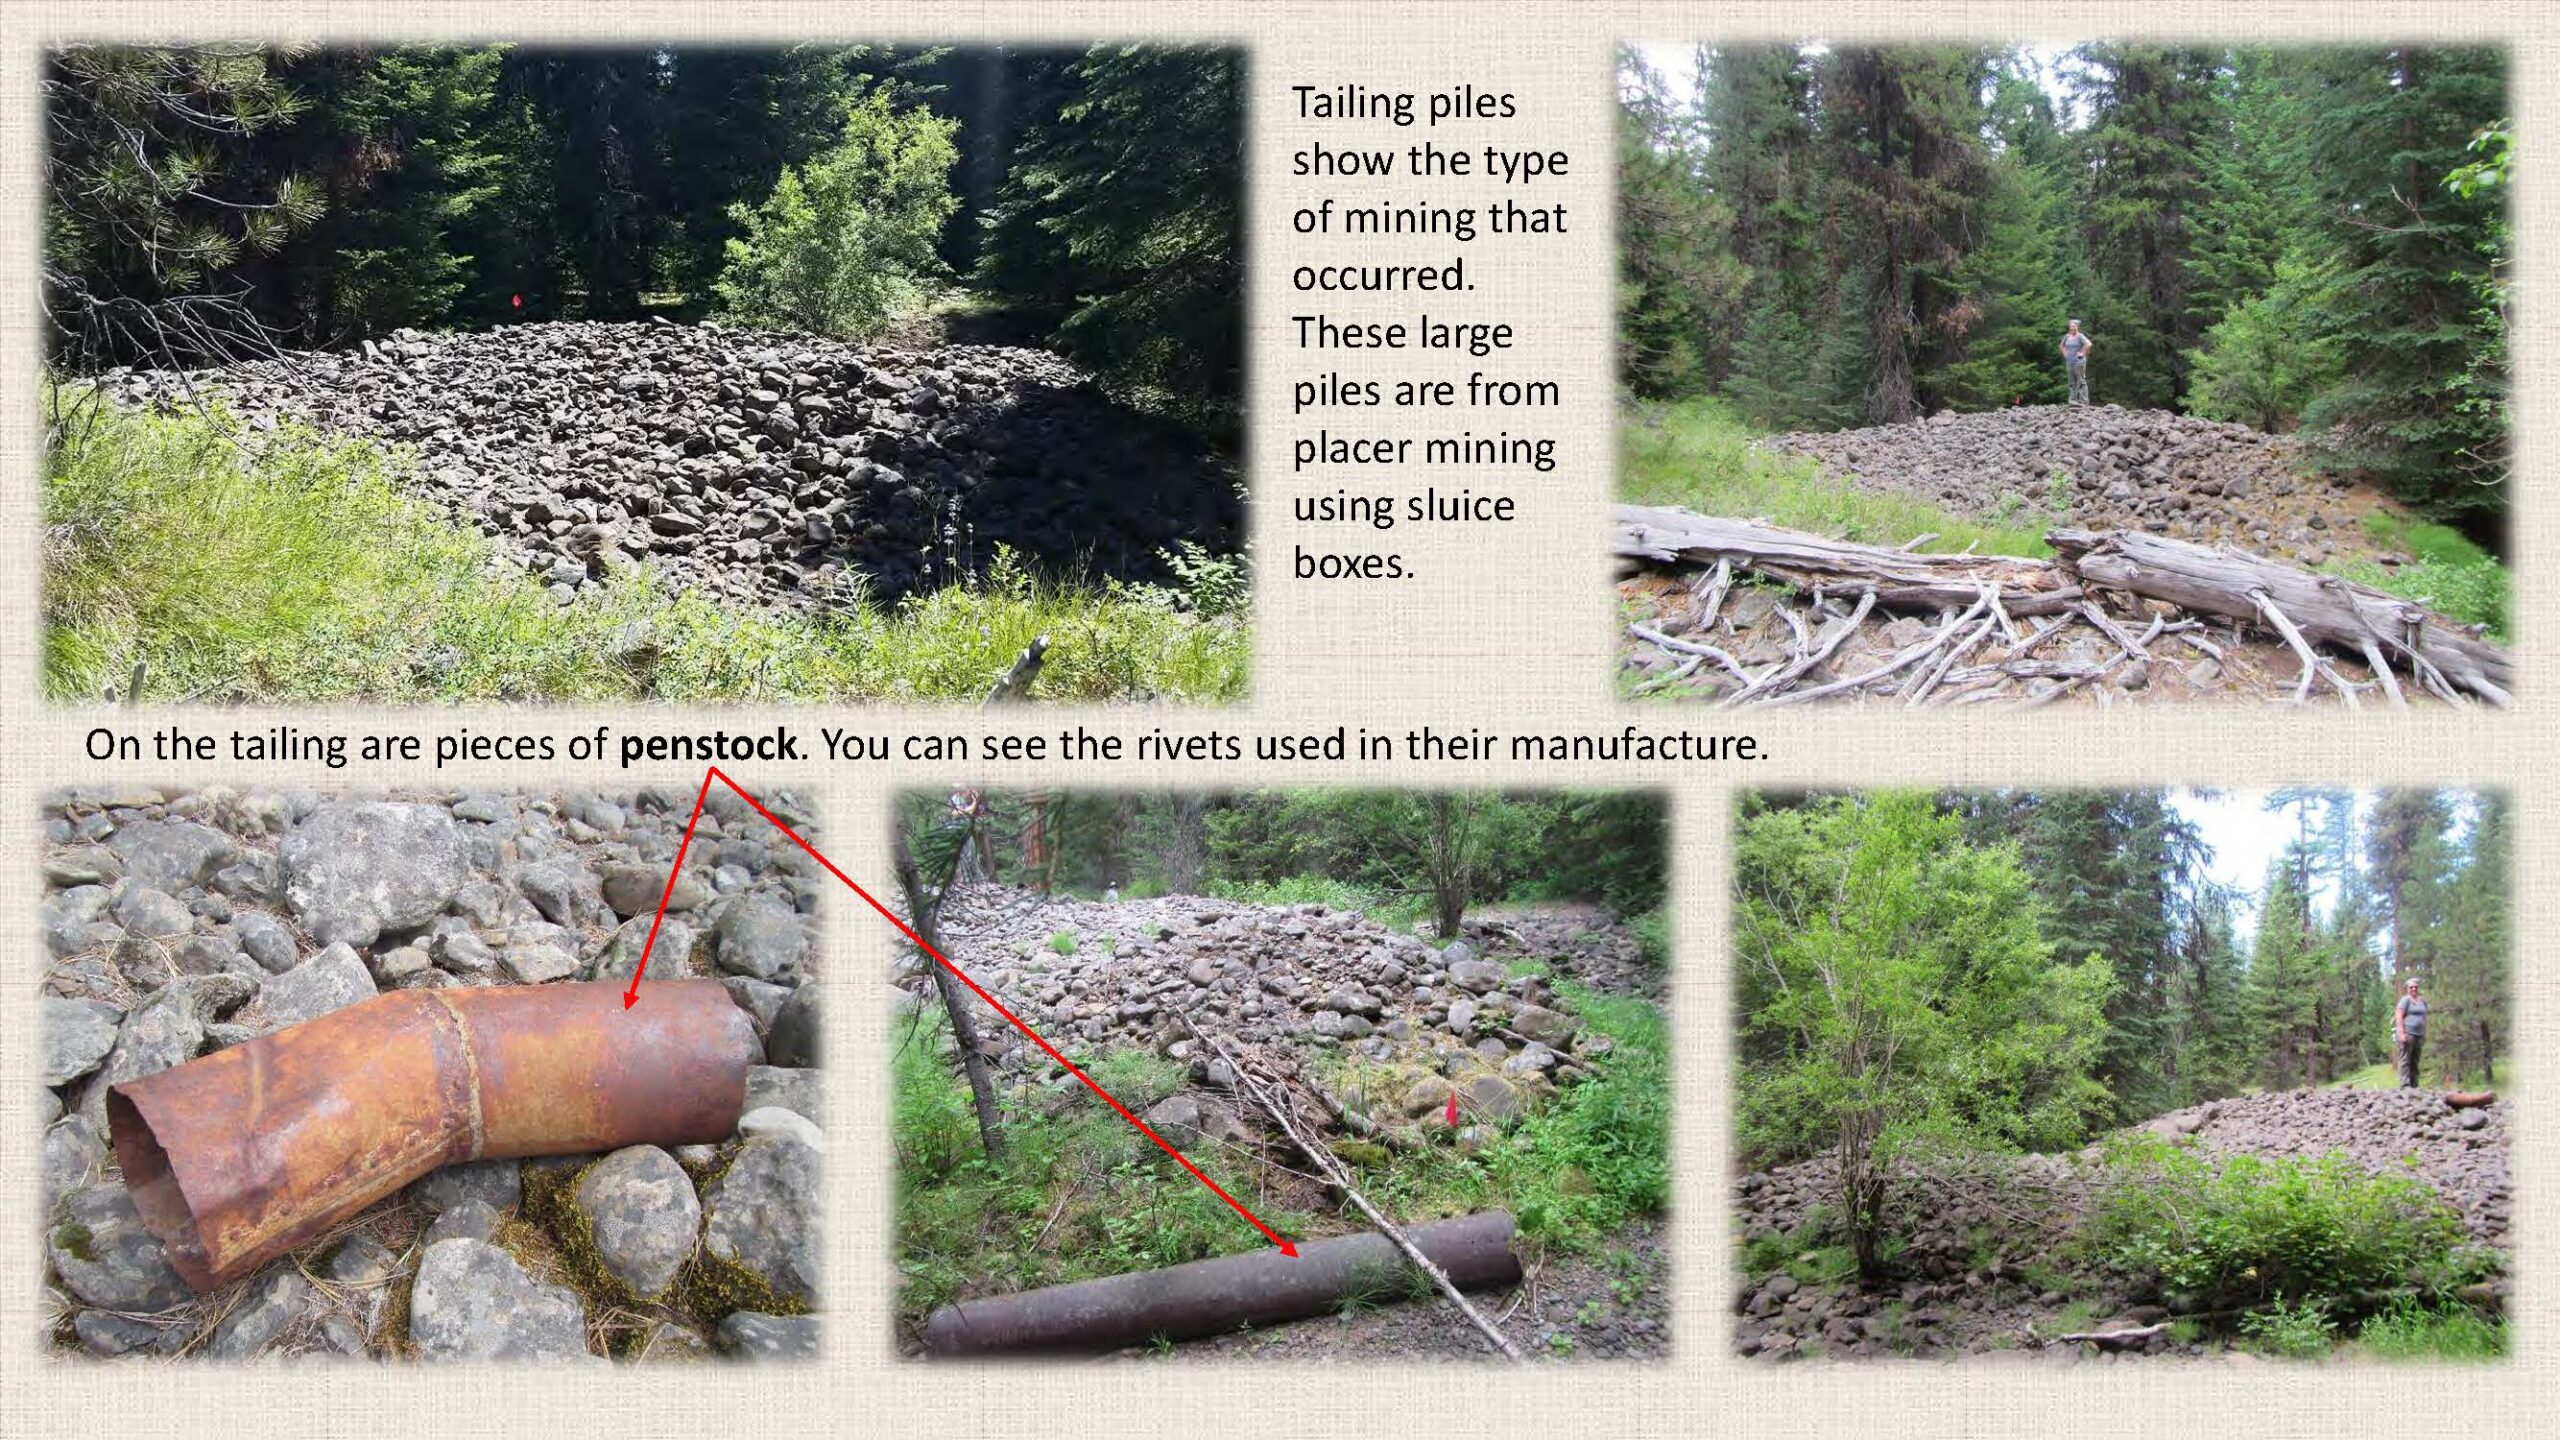 Tailing piles show the type of mining that occurred.